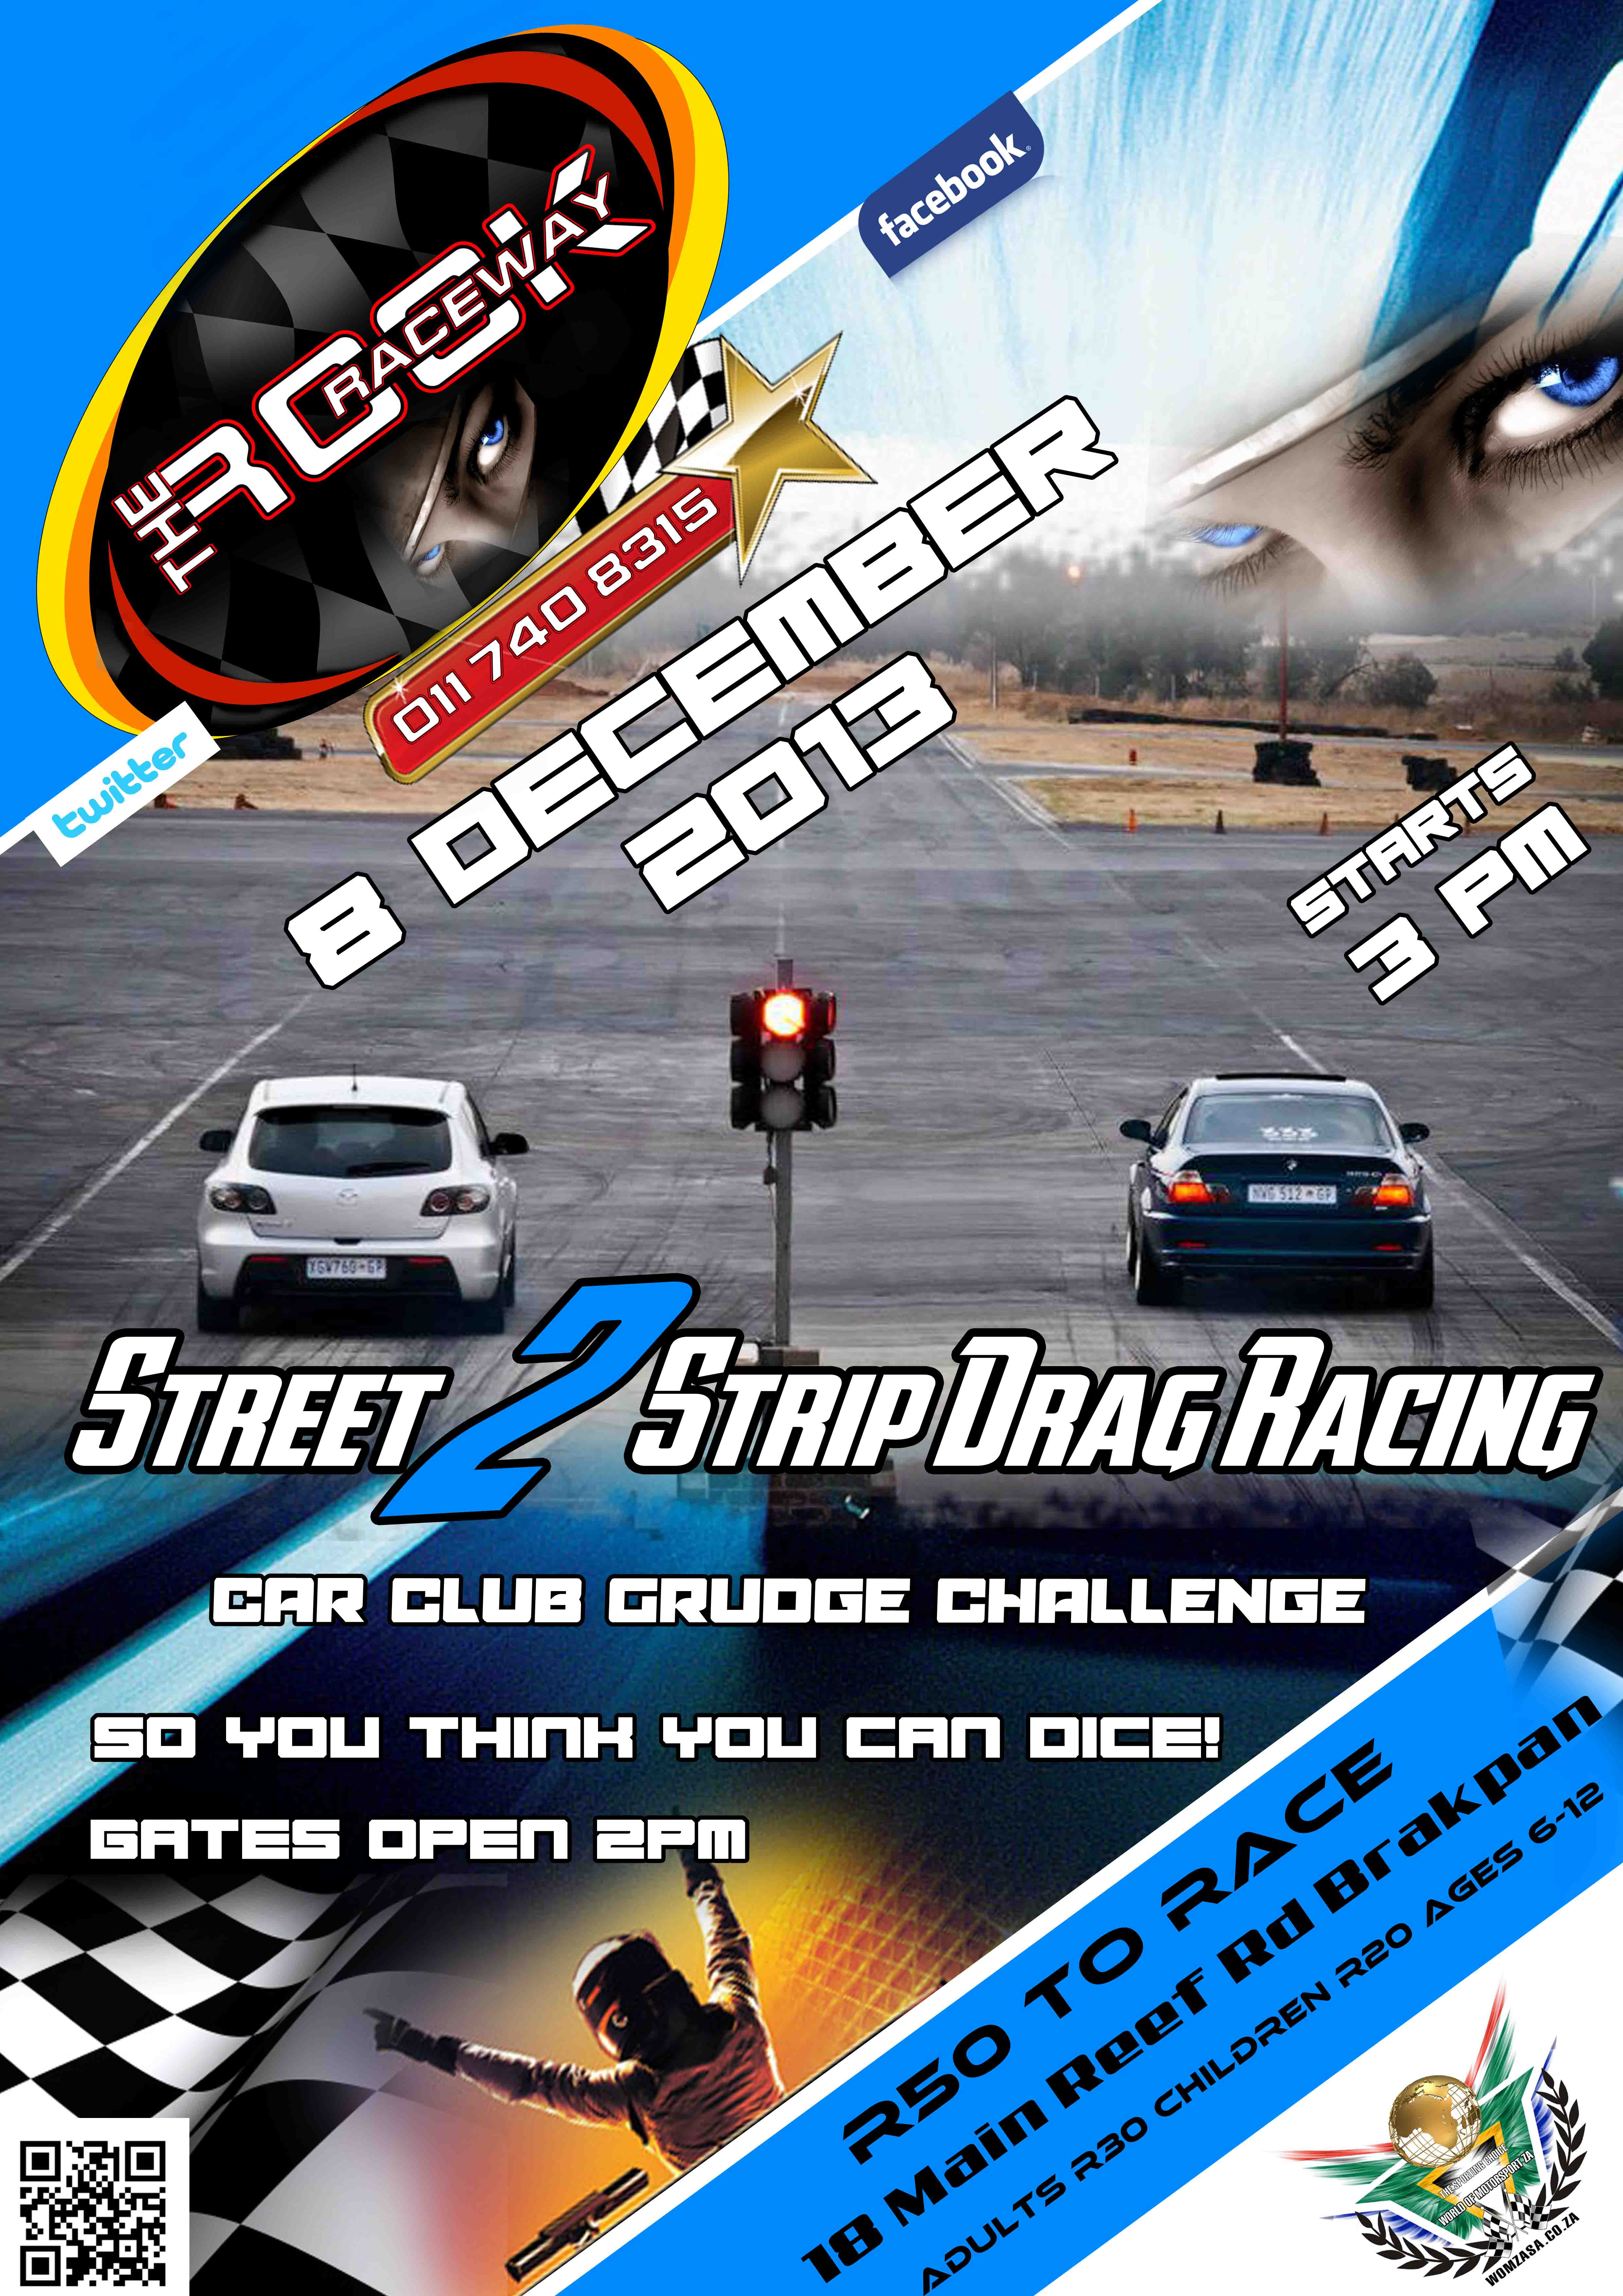 8 Dec Drags